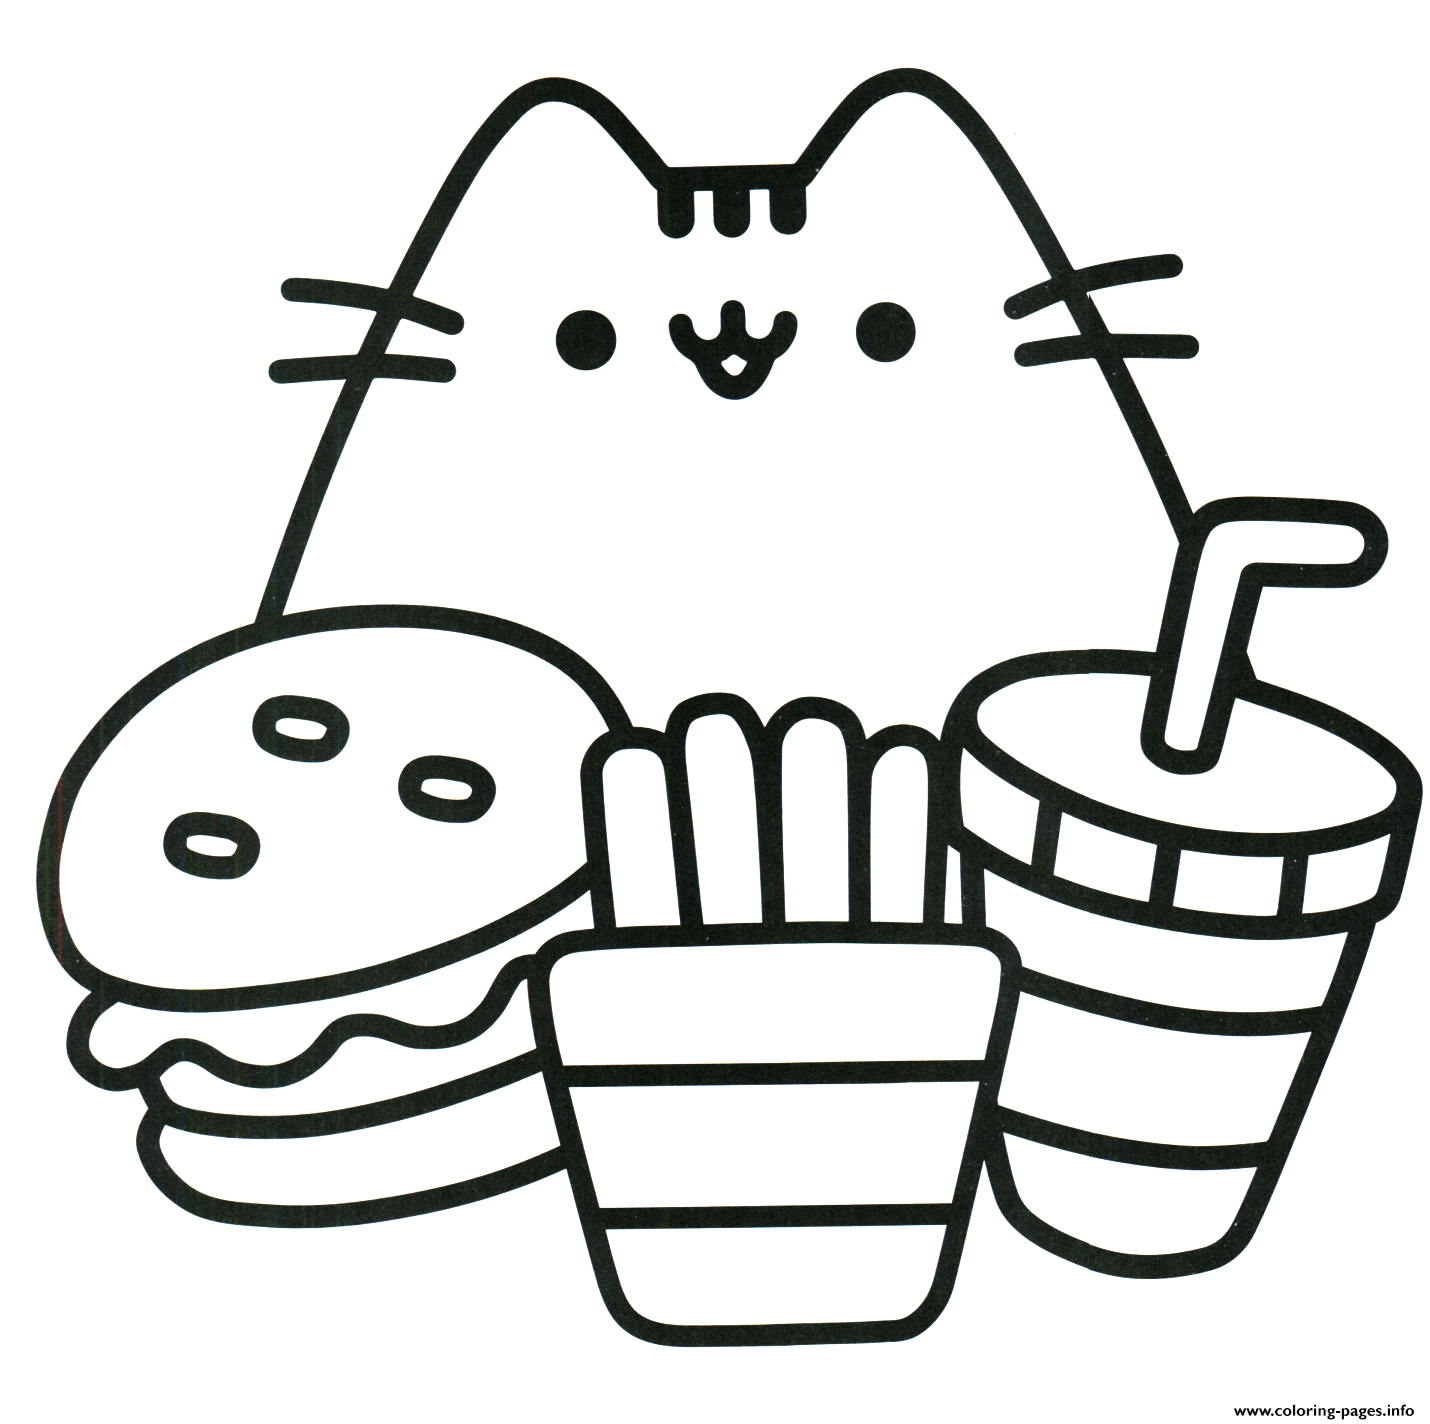 Print Pusheen Ready To Eat Food Coloring Pages Pusheen Coloring Pages Unicorn Coloring Pages Cool Coloring Pages